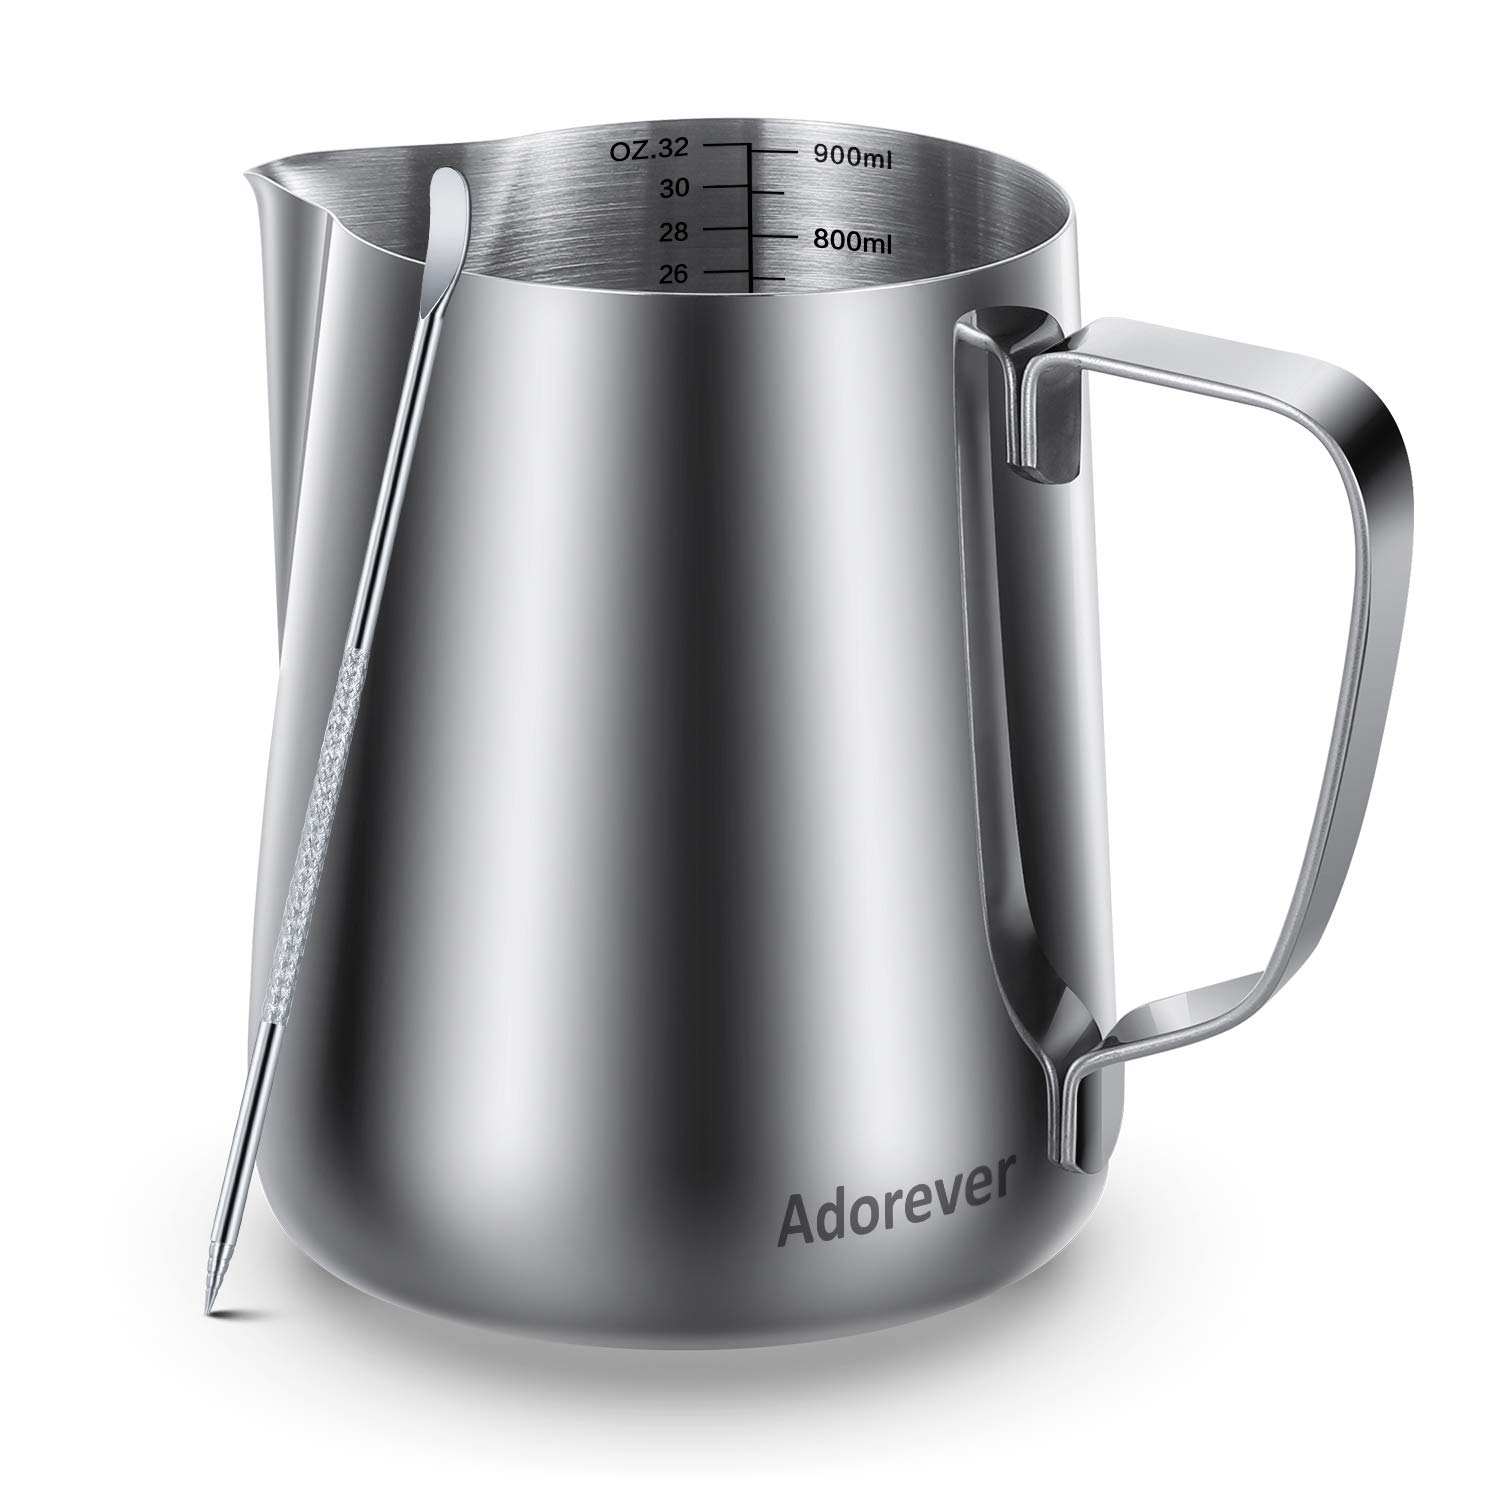 Milk Frothing Pitcher 900ml/32oz Steaming Pitchers Stainless Steel Milk Coffee Cappuccino Latte Art Barista Steam Pitchers Milk Jug Cup with Decorating Art Pen, Sliver by Adorever